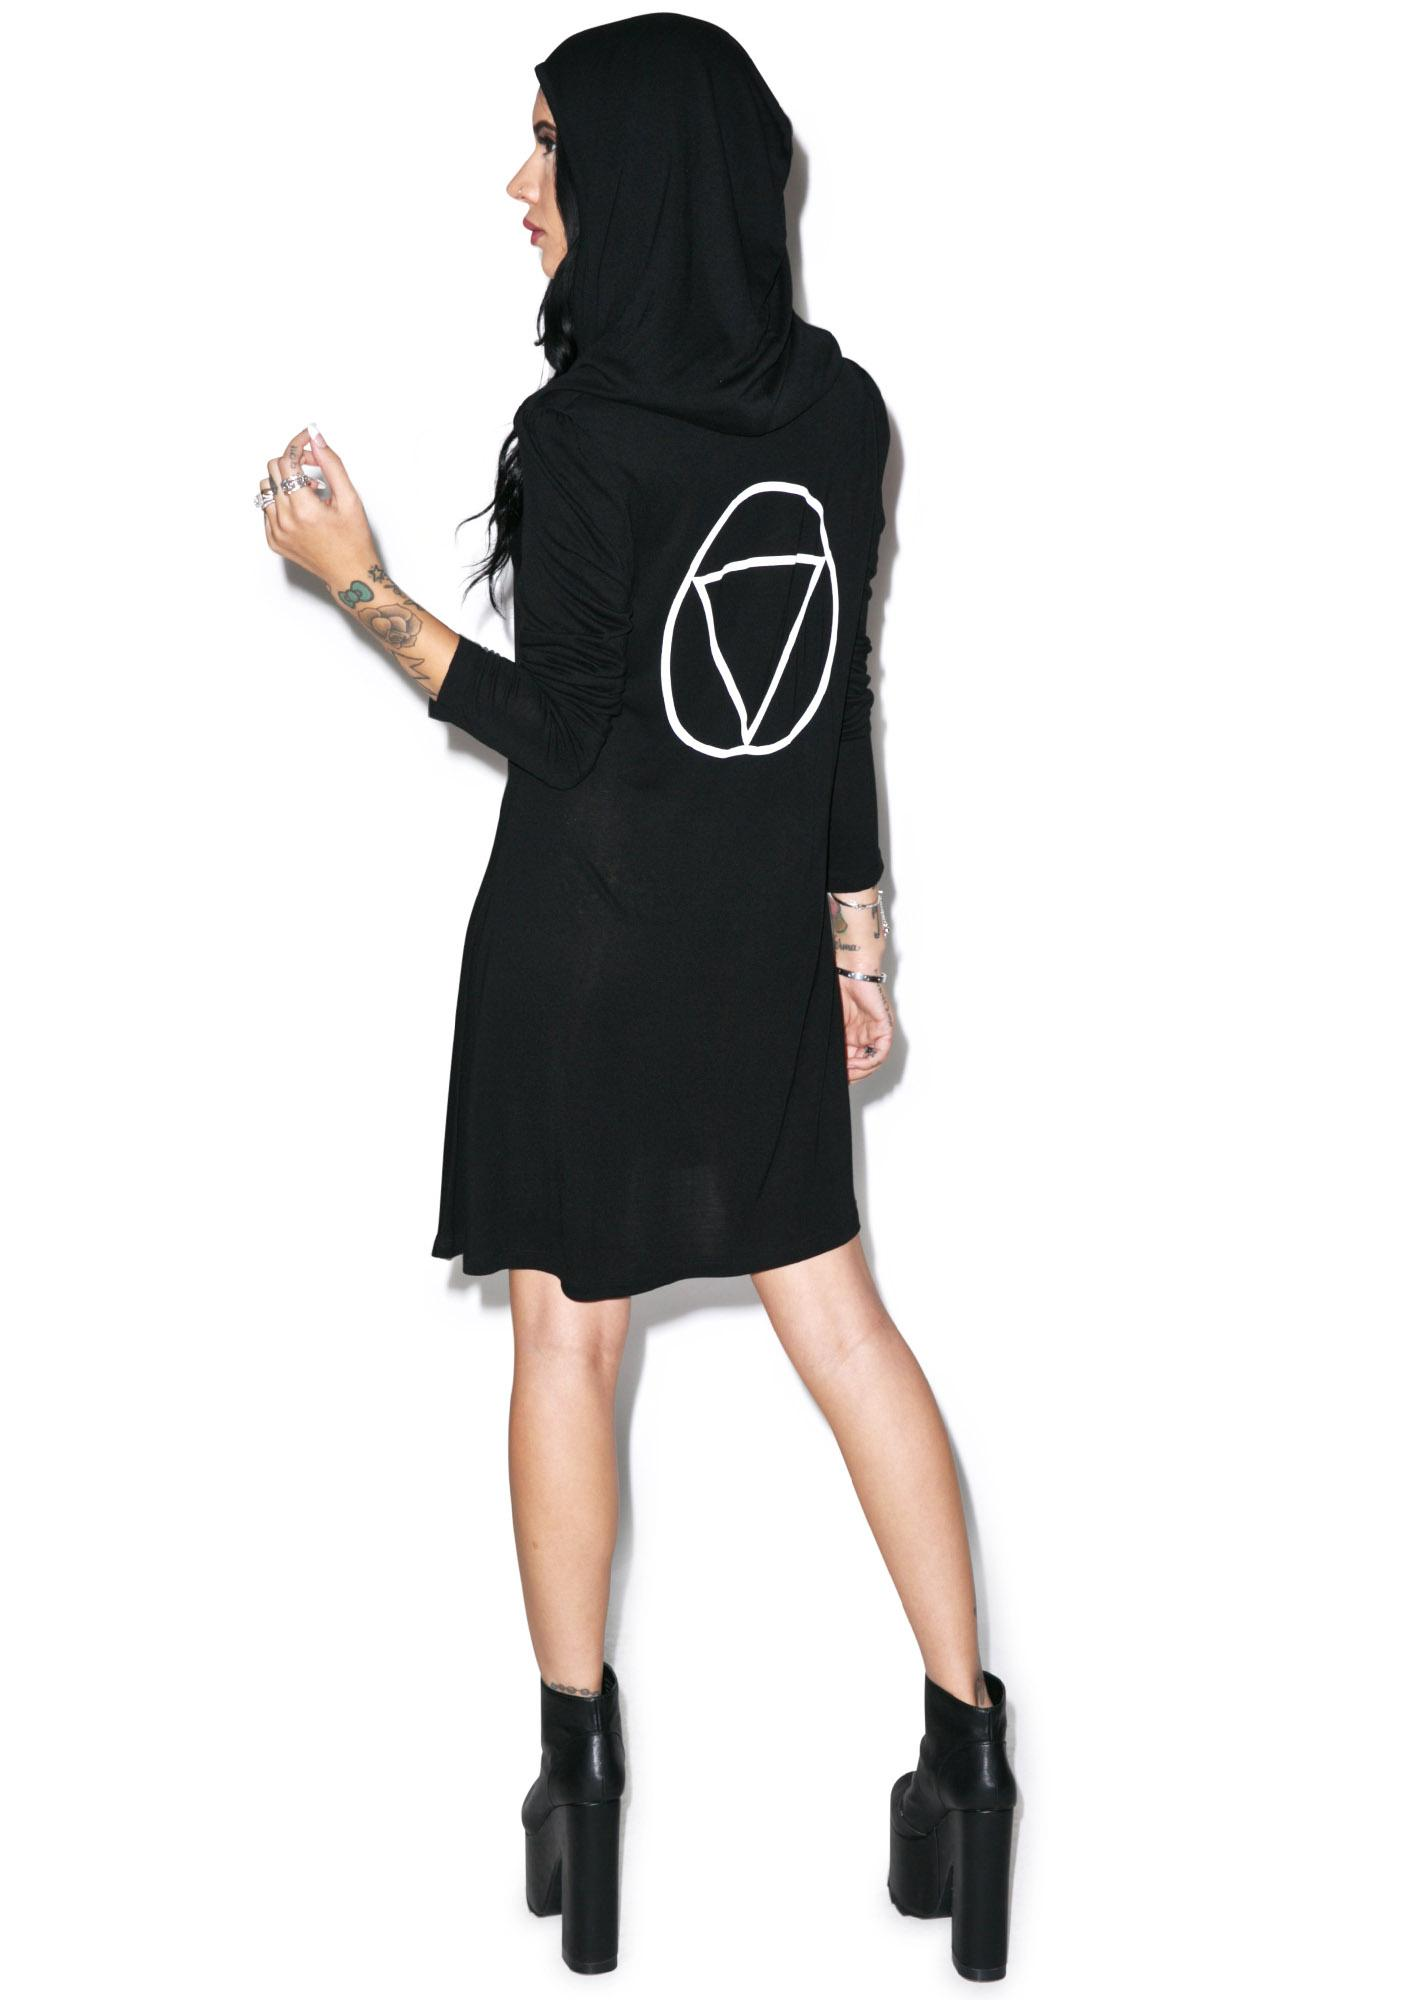 Disturbia Wraith Hooded Dress